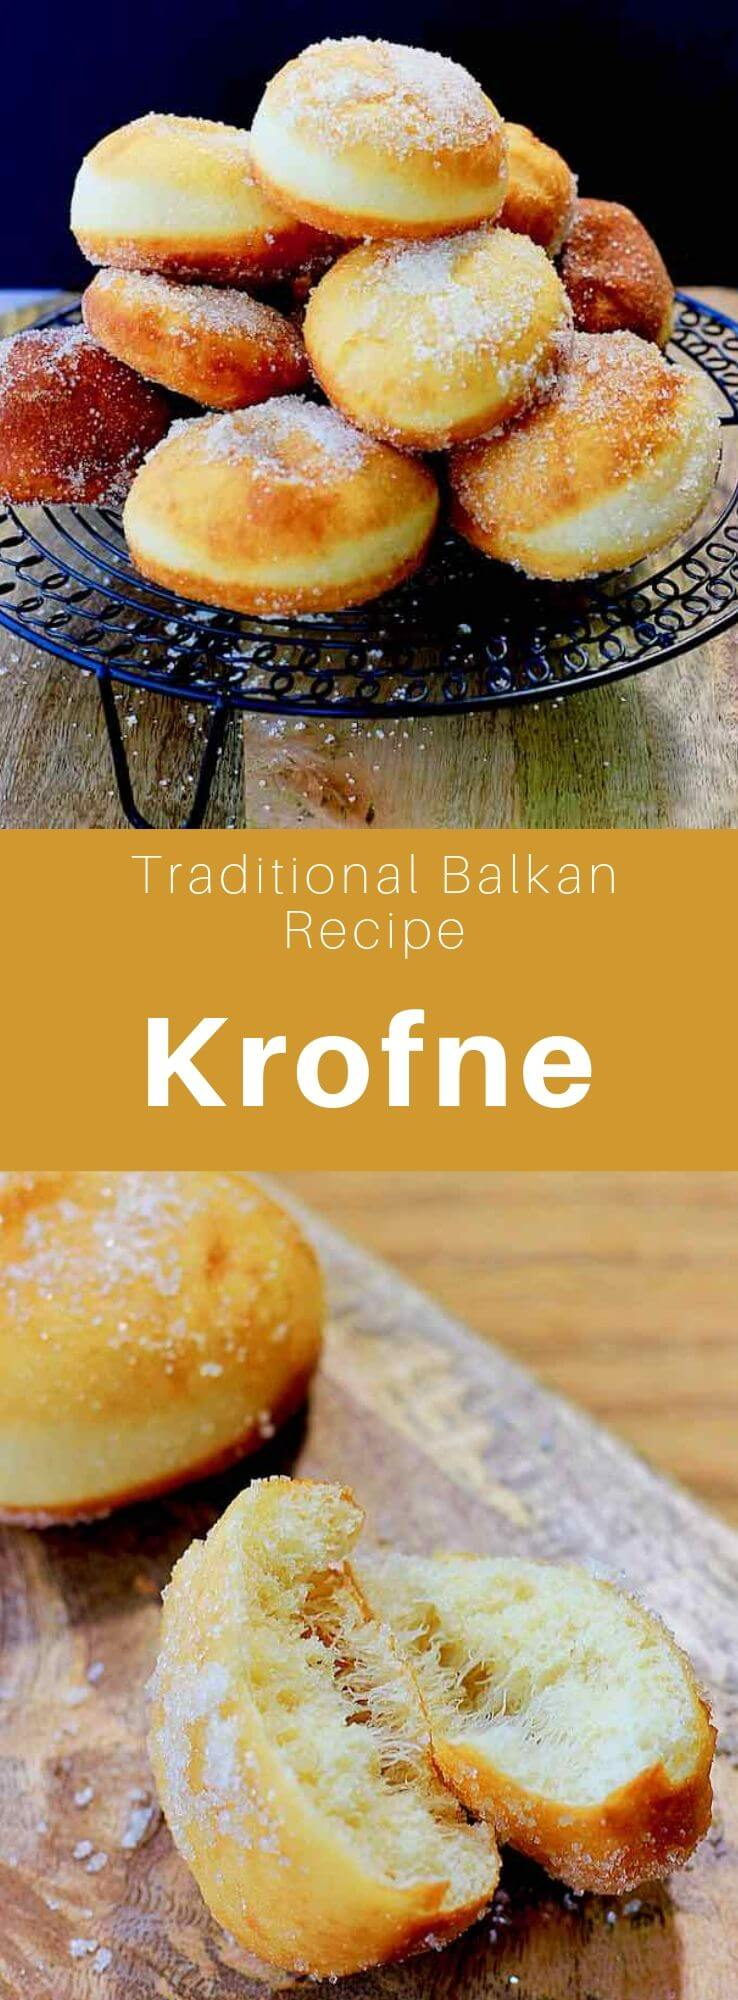 Krofne (krafne or krafna) is a Croatian and Serbian donut served especially before the beginning of the Great Lent and during the carnival. #SouthernEuropeCuisine #BalkansRecipe #SerbiaRecipe #BalkanCuisine #Serbian Cuisine #WorldCuisine #196flavors